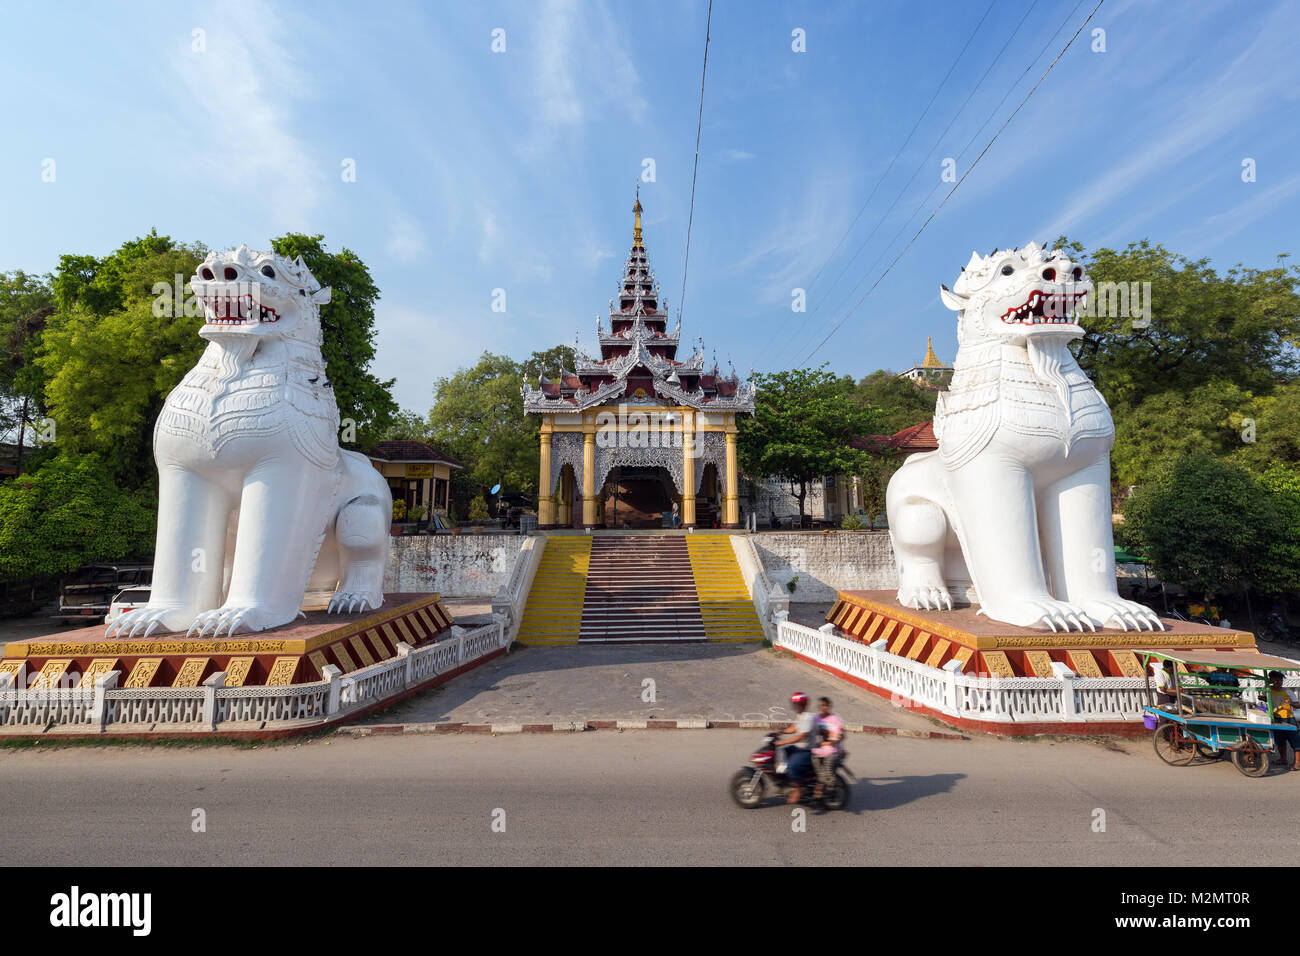 Two giant chinthes or leogryphs (stylised lion figures) guarding southern entrance to Mandalay Hill in Myanmar, - Stock Image